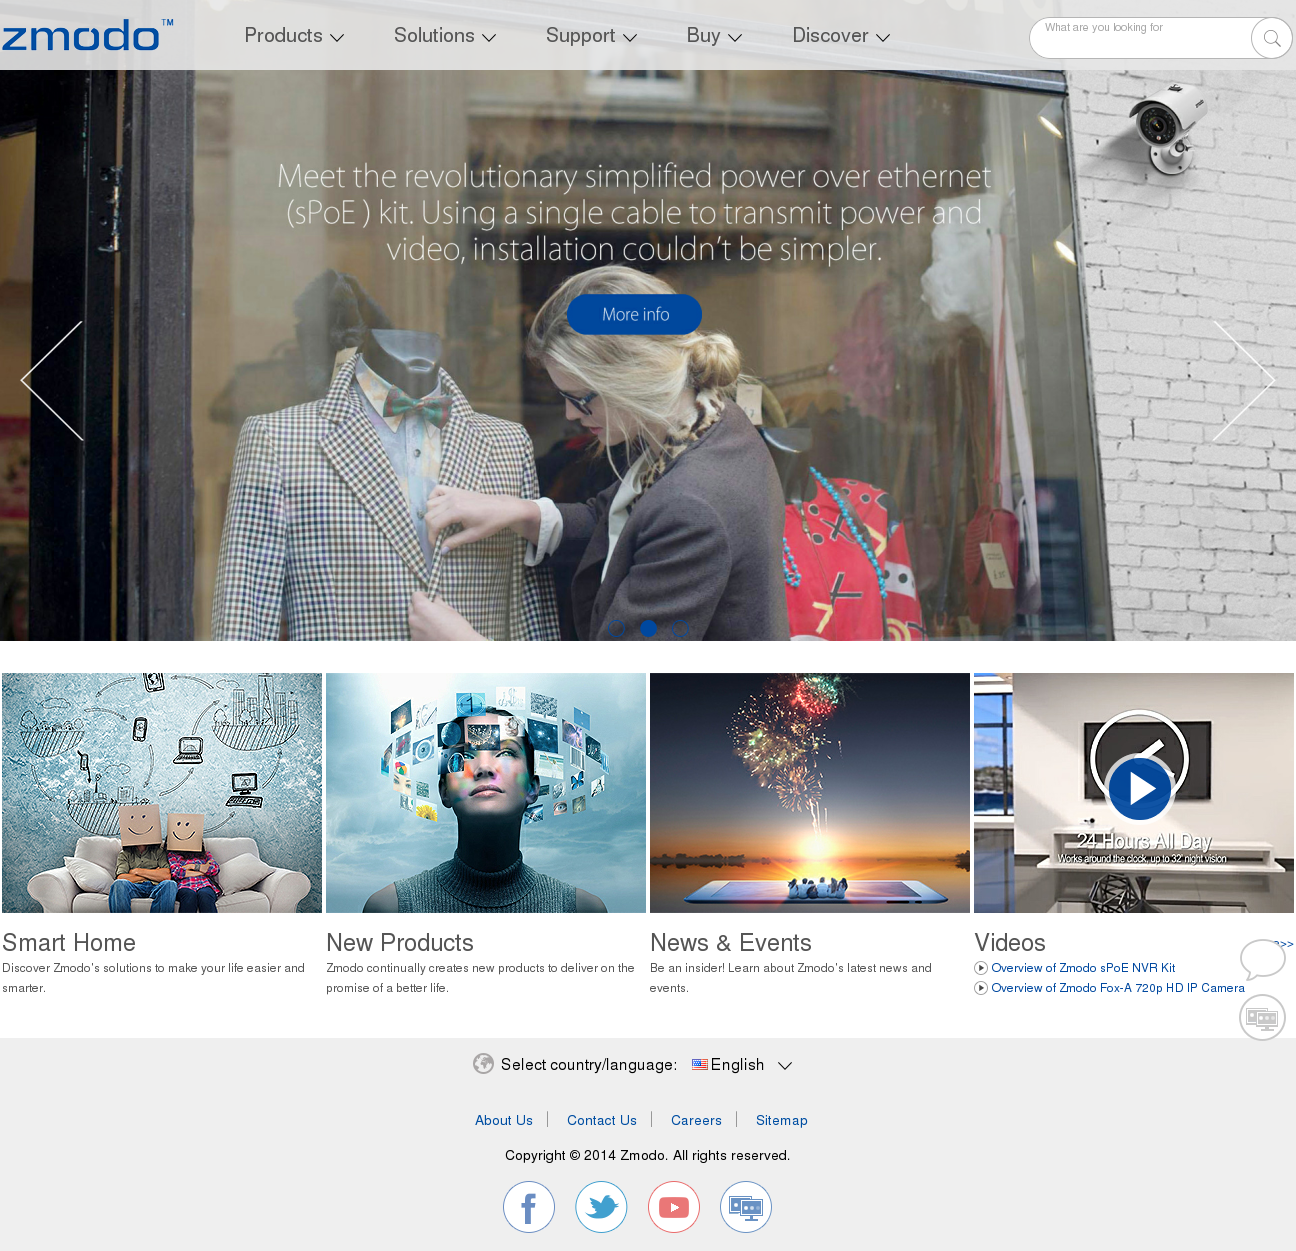 Zmodo Competitors, Revenue and Employees - Owler Company Profile